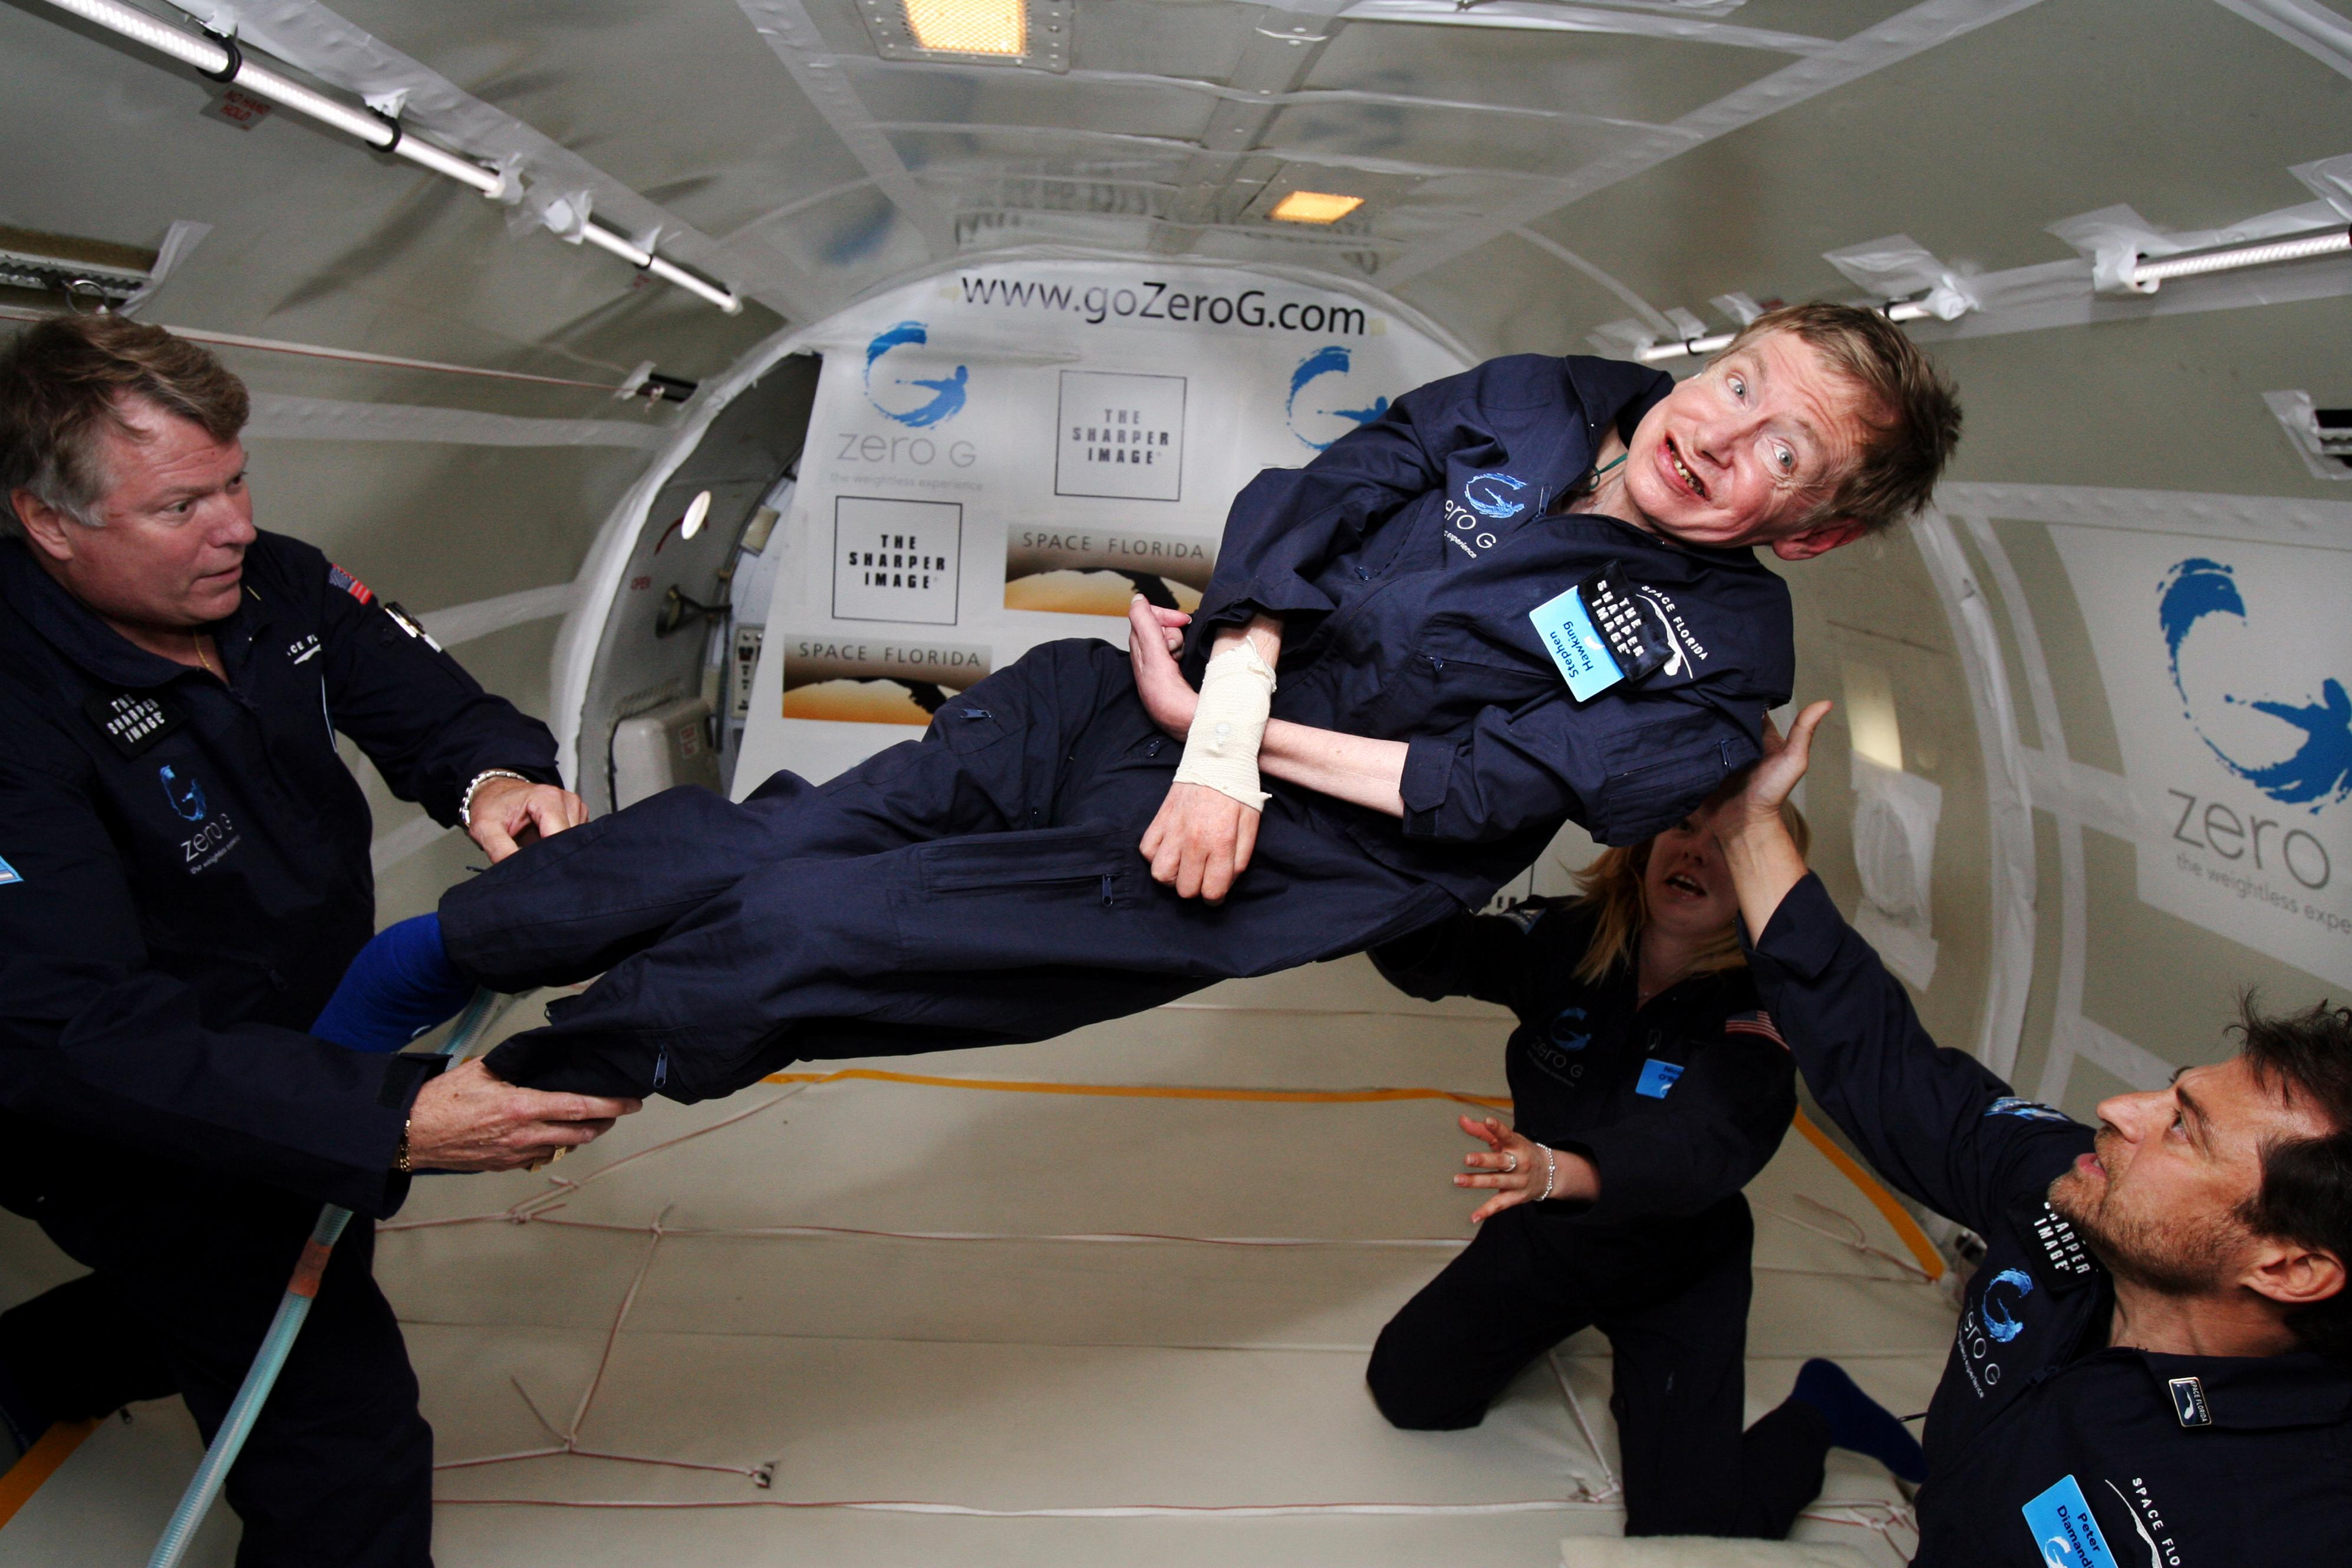 What happens on a zero gravity flight?